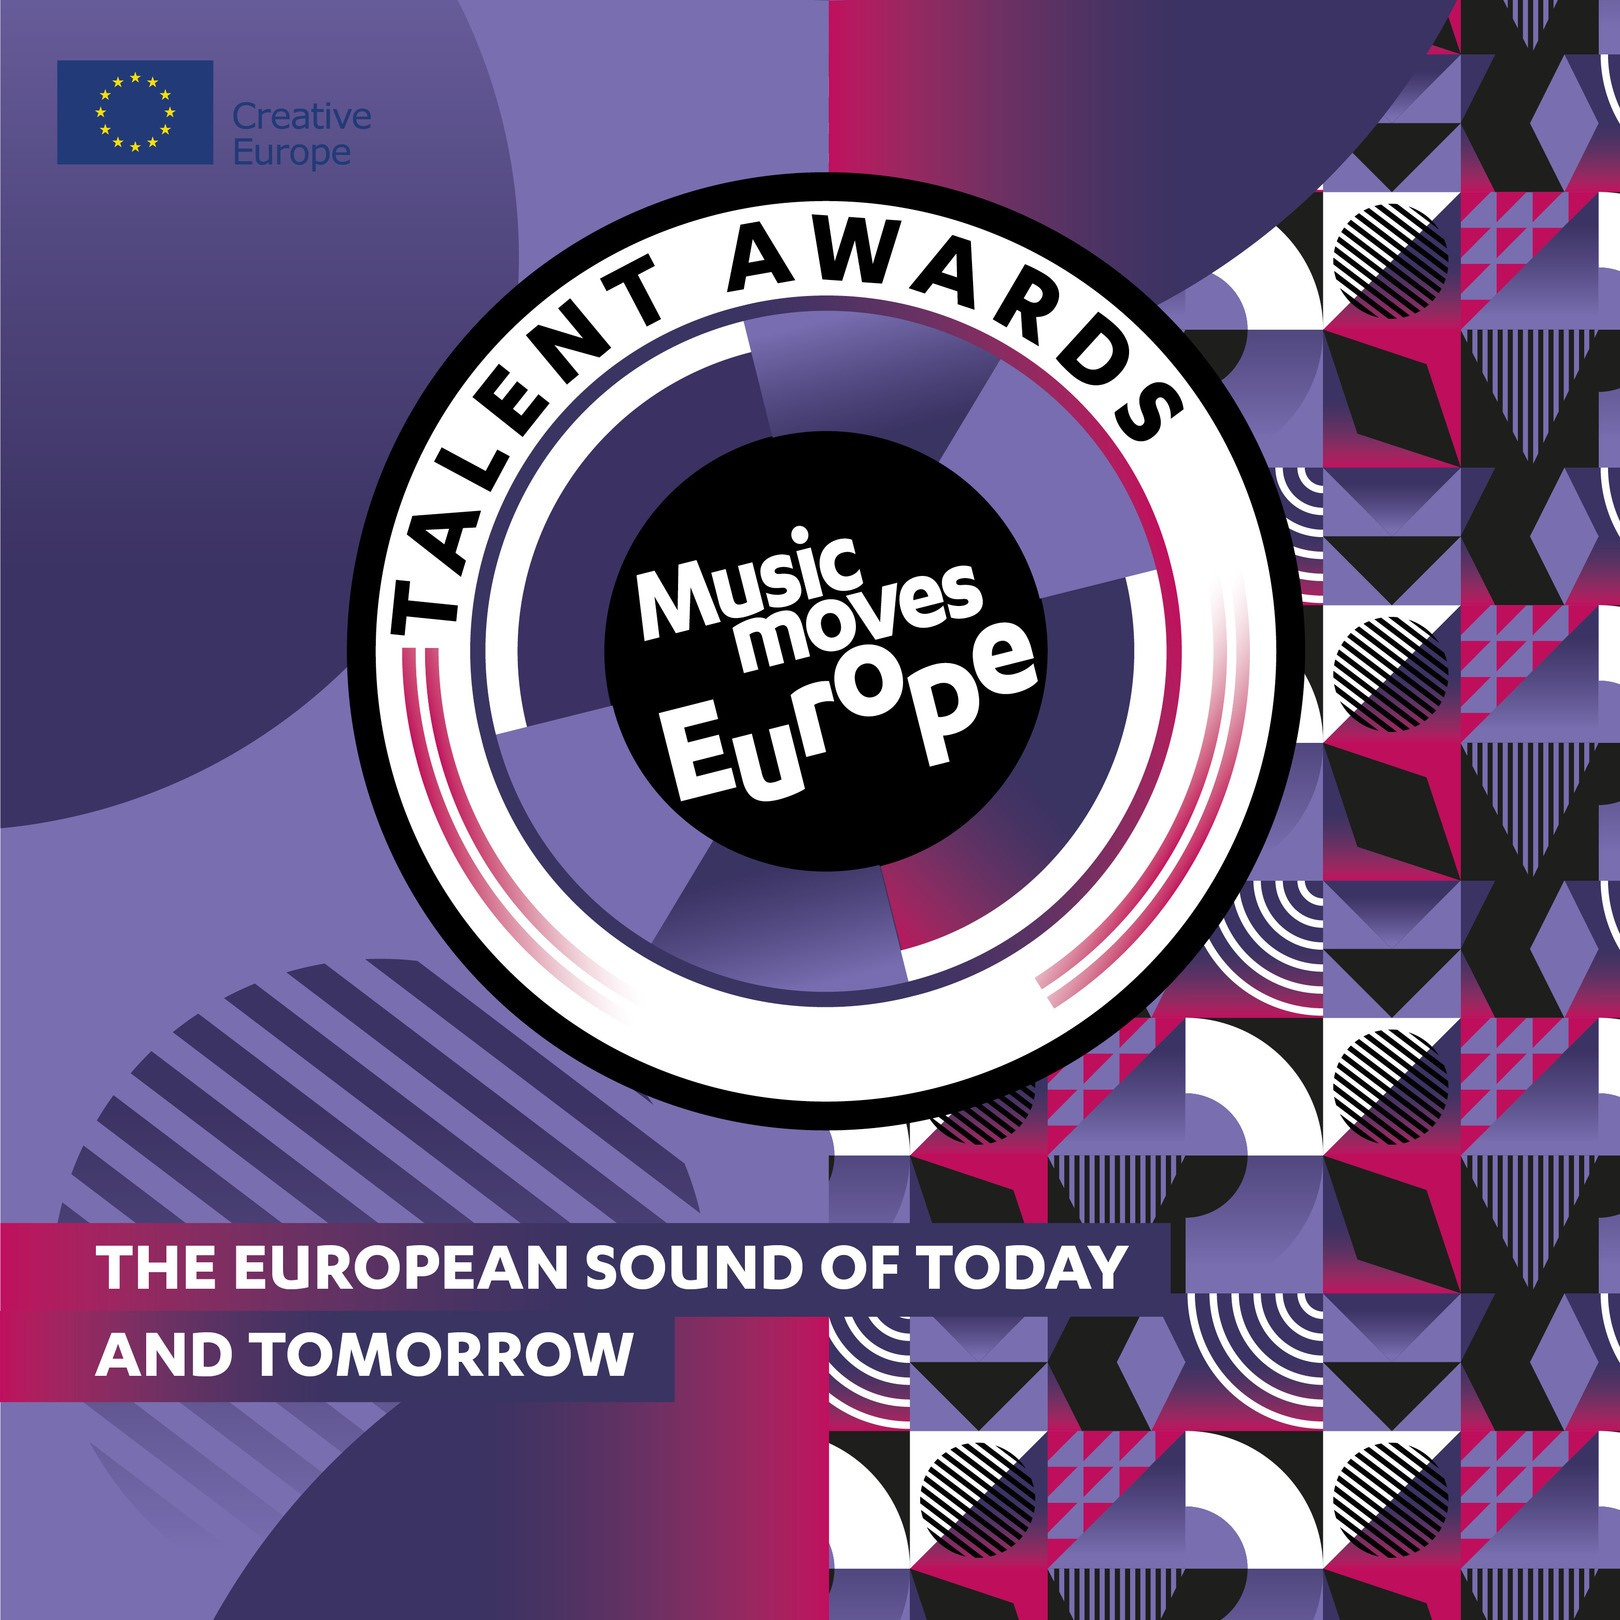 Music Moves Europe Talent Awards 2020 credit by: musicmoveseuropetalentawards.eu